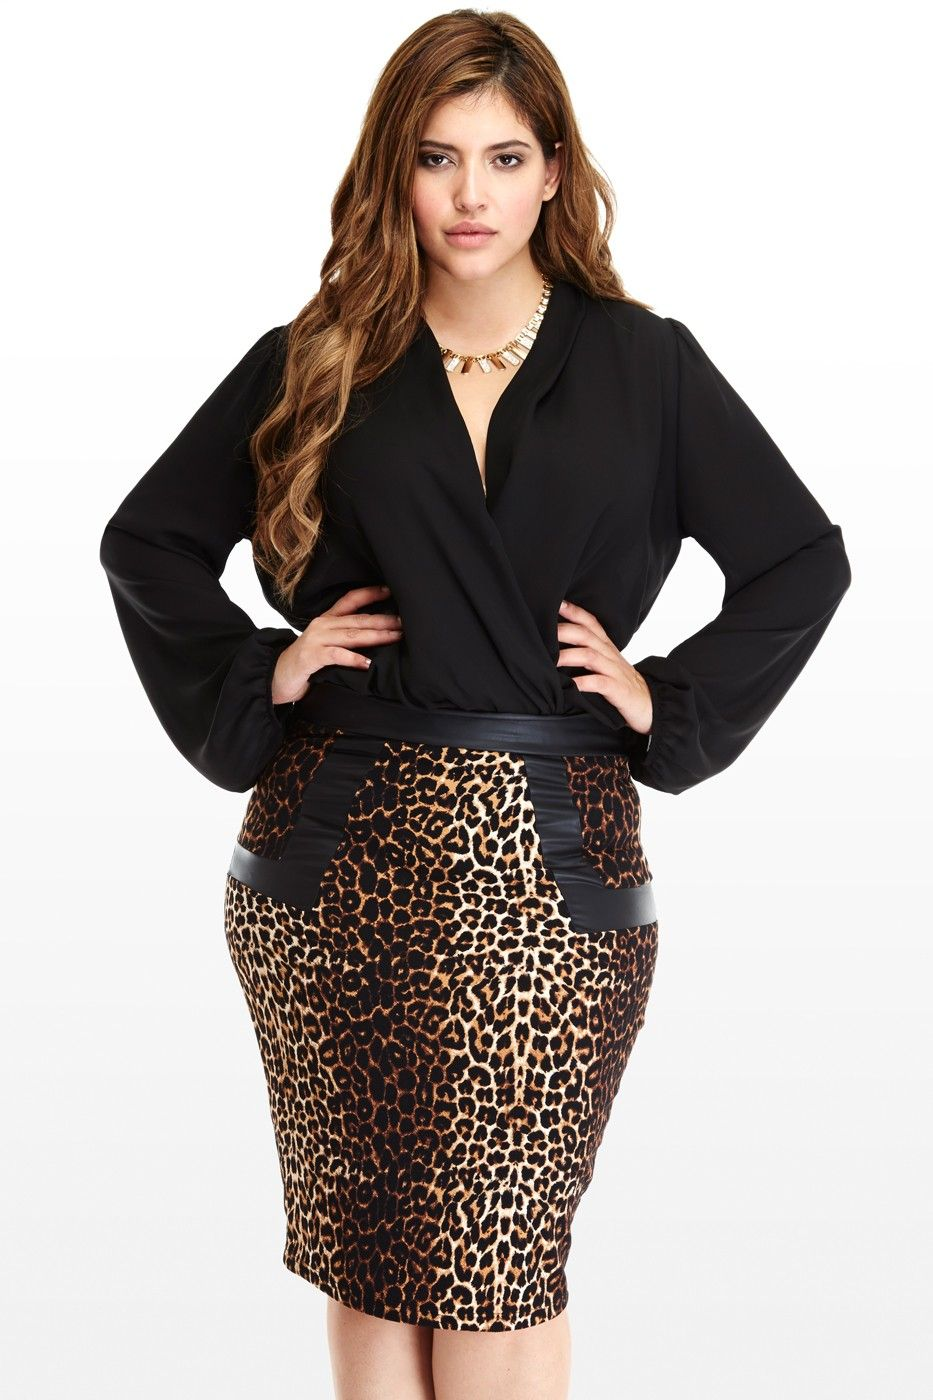 Ashley graham wedding dress  Leopard Pencil Skirt  faldas  Pinterest  Pencil skirts Leopards